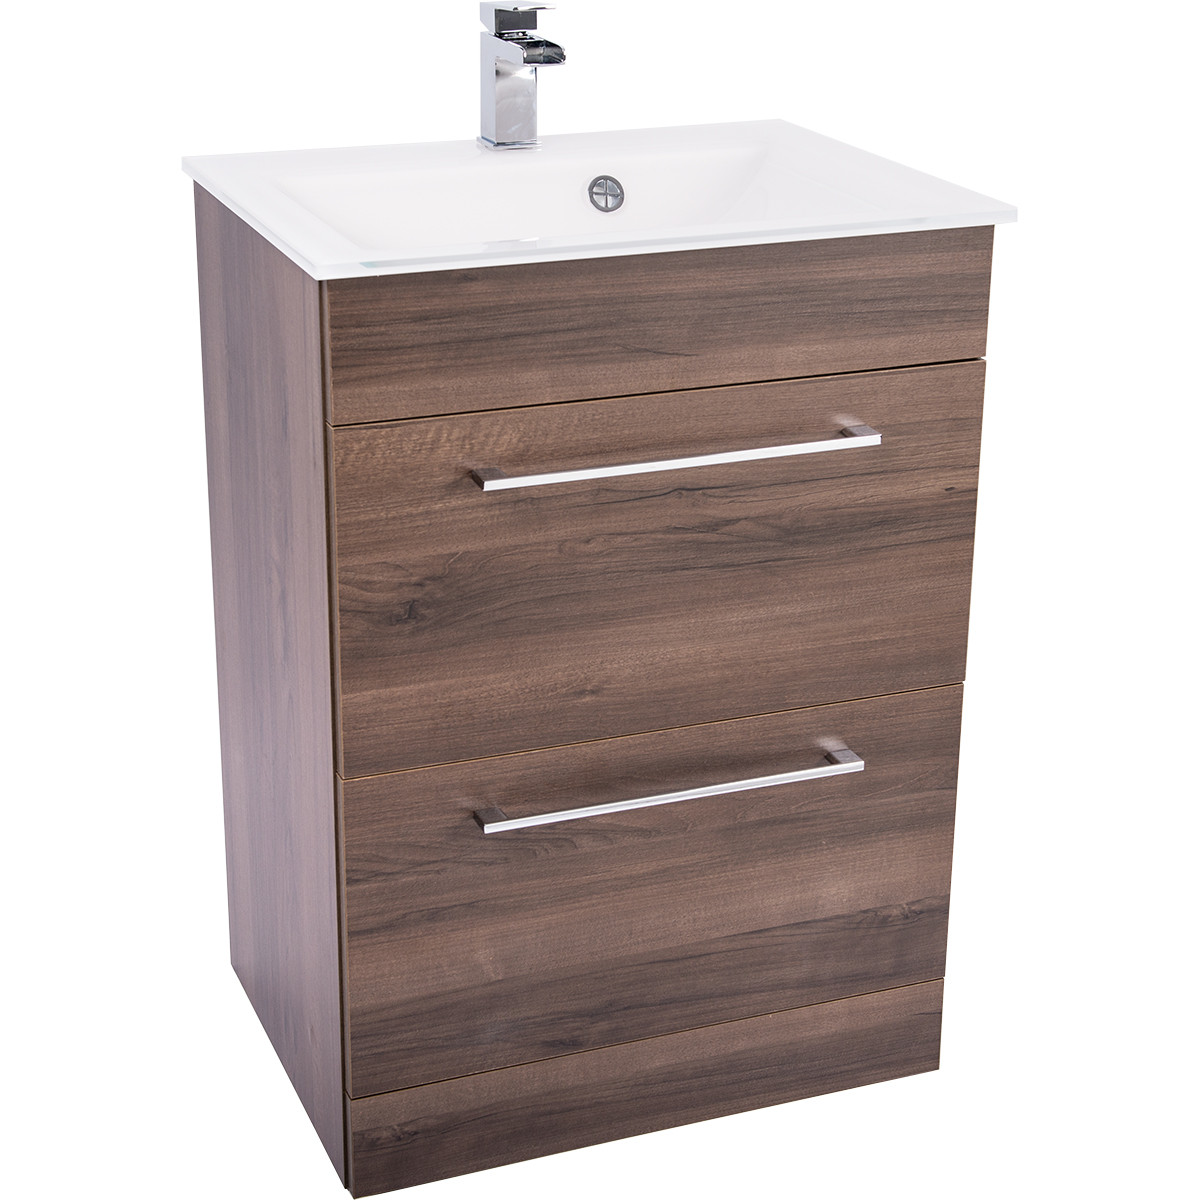 Venice White 600 Napoli Walnut 2 Drawer Unit & Basin